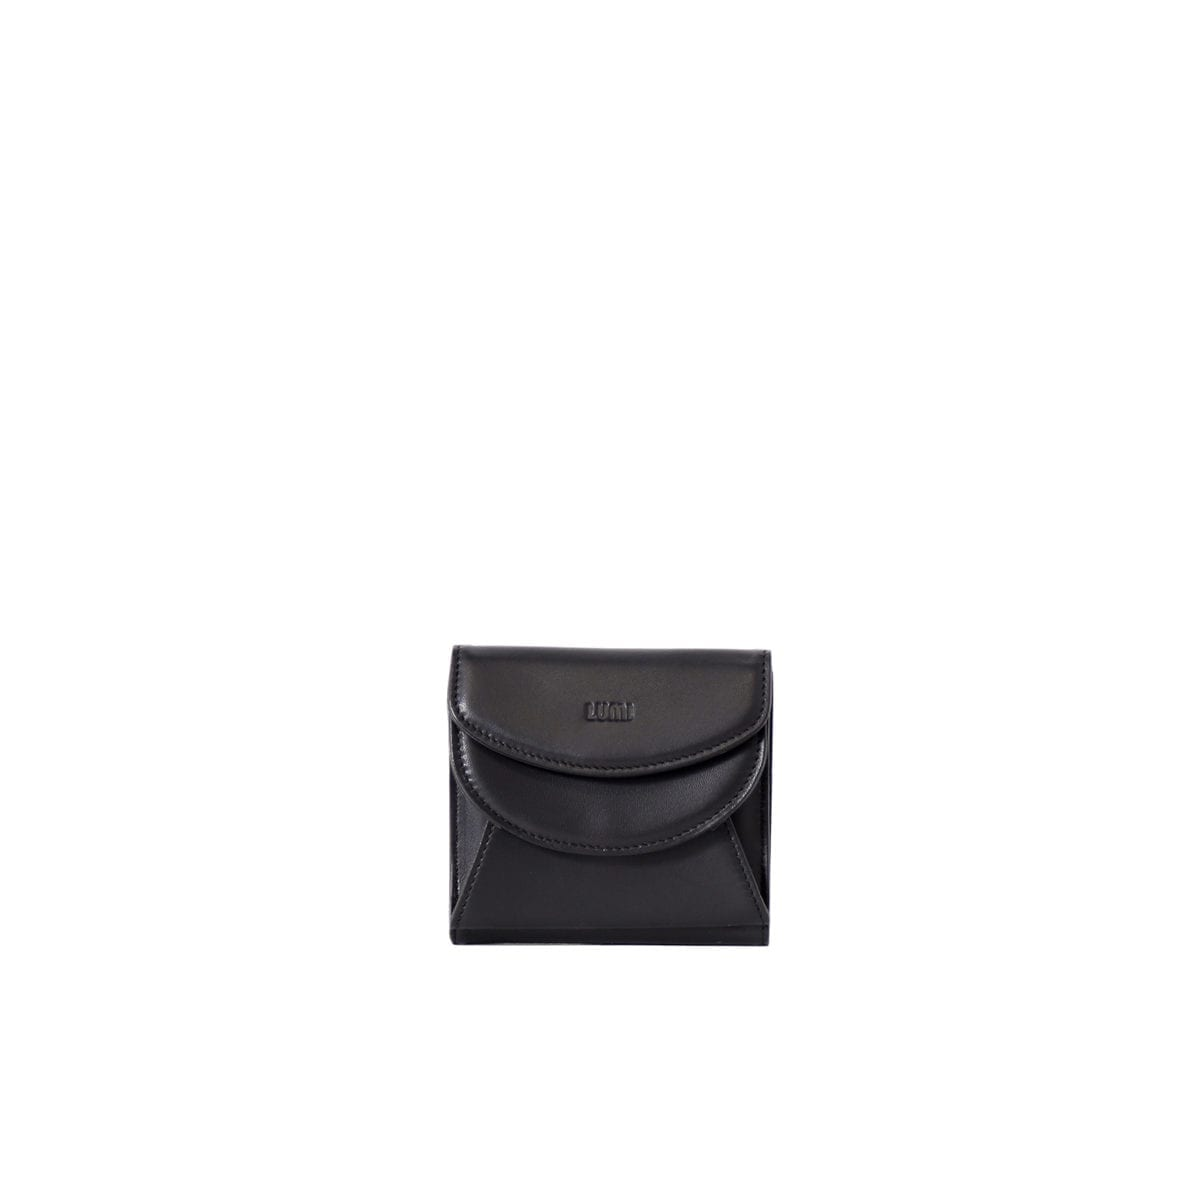 990a33223c LUMI Viivi Trifold Wallet in classic black. This little trifold wallet  safe-keeps your